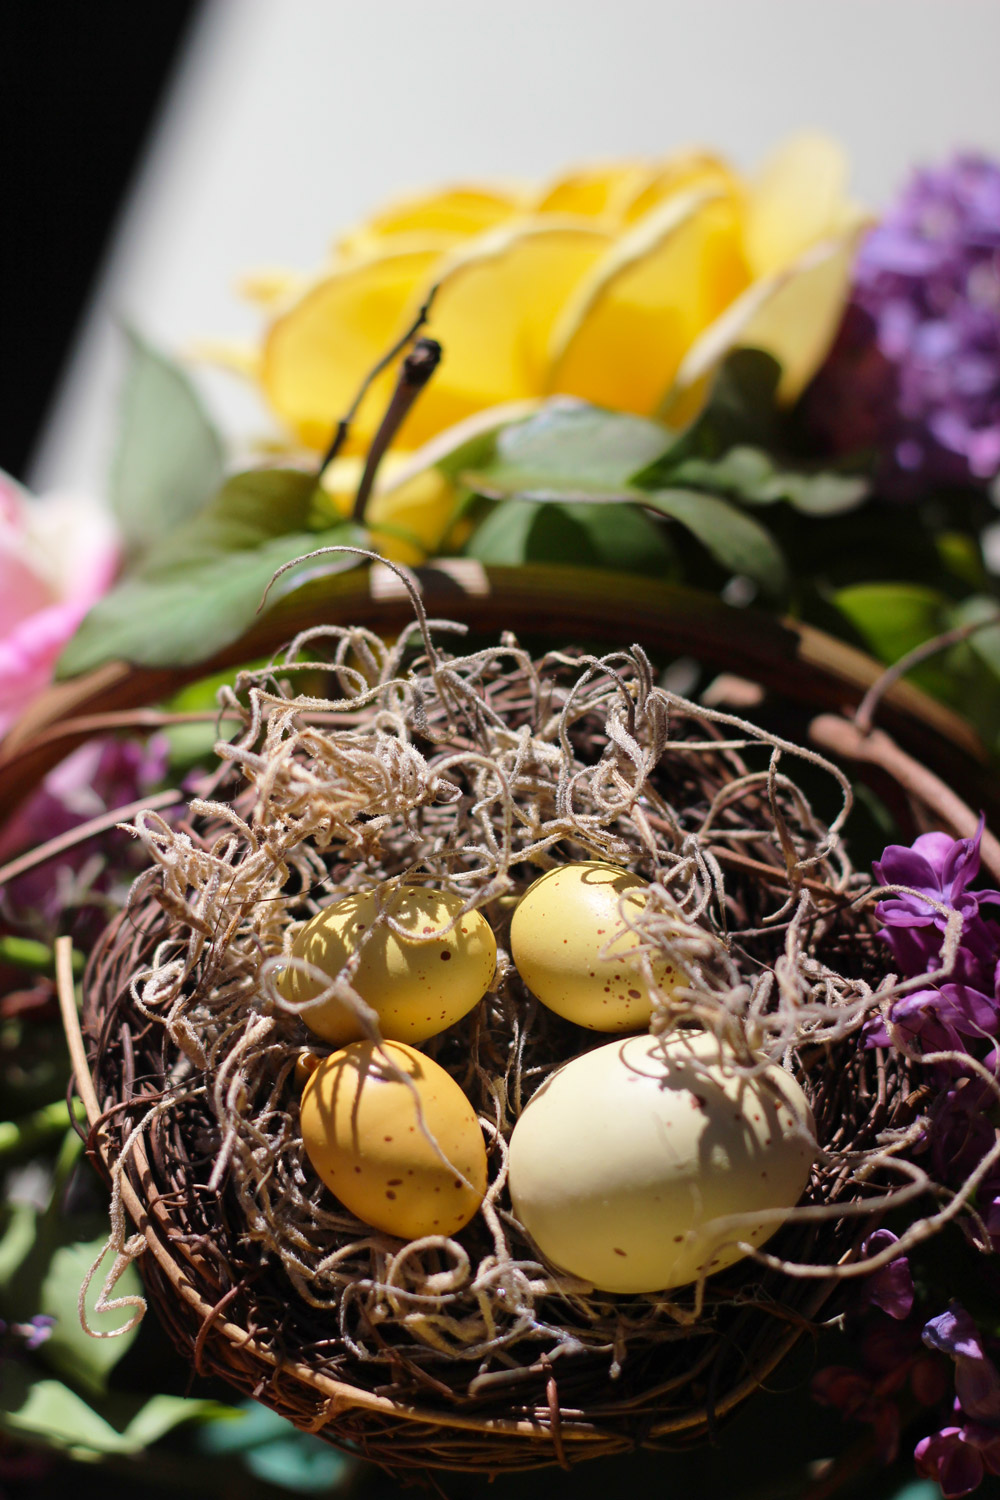 Bend wire on eggs straight down. Put daub hot glue on each egg and position in nest. Push flower pick into foam to position.